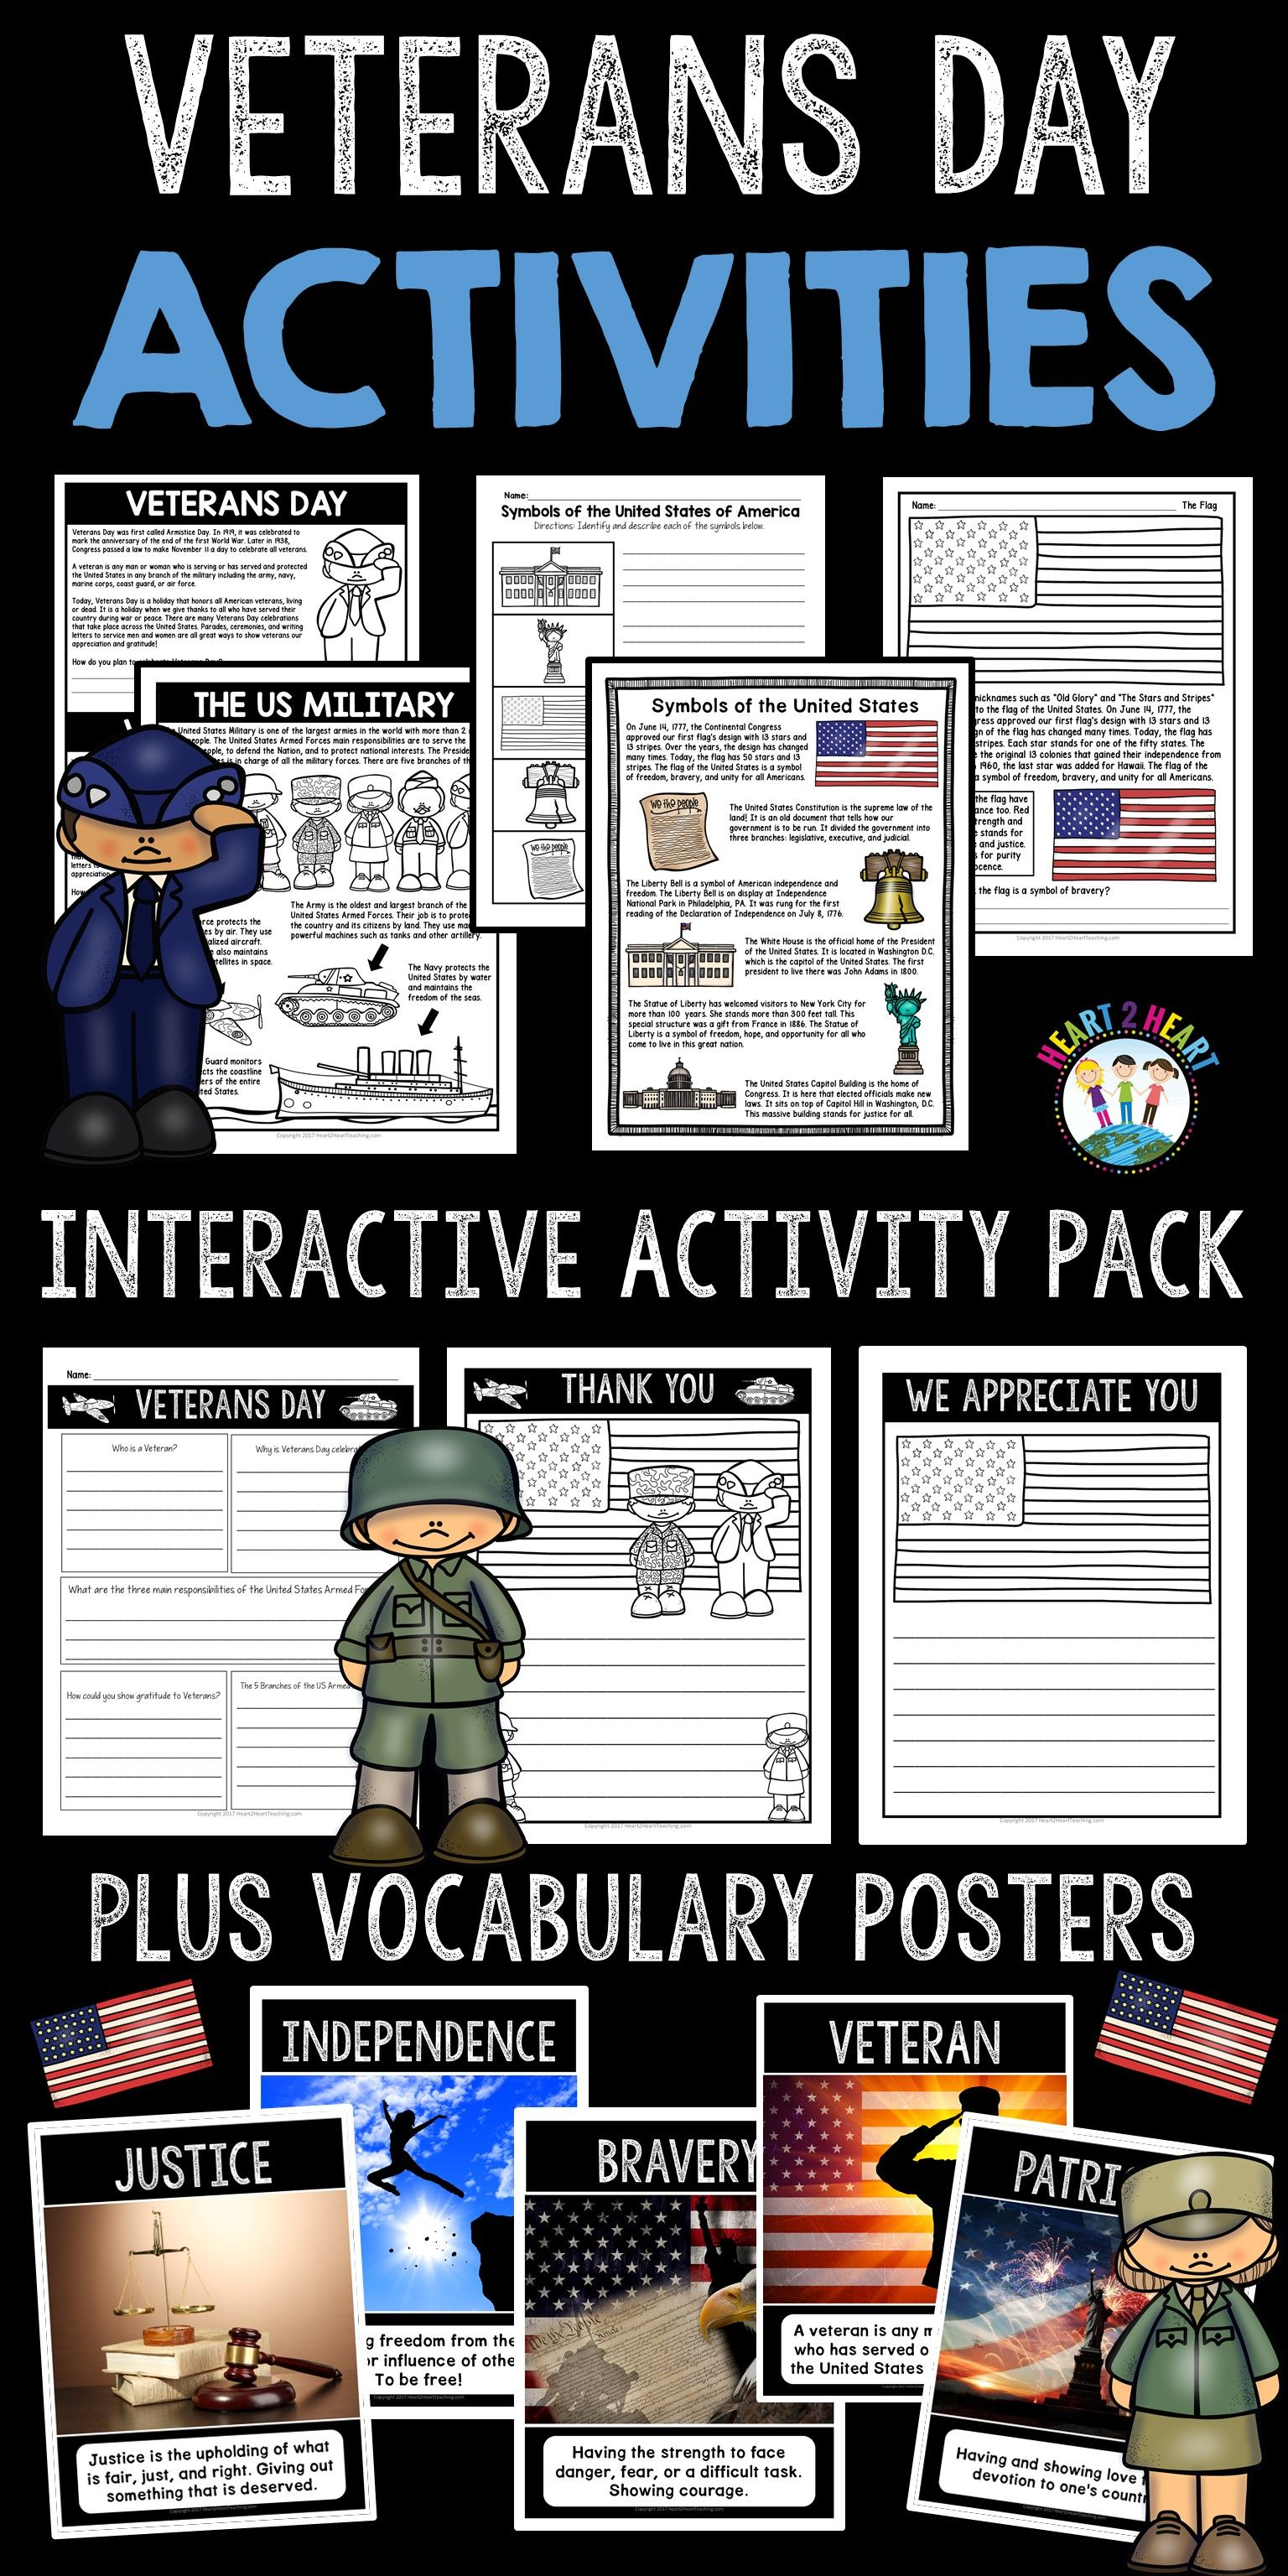 Veterans Day Activities With Veterans Day Writing Symbols United